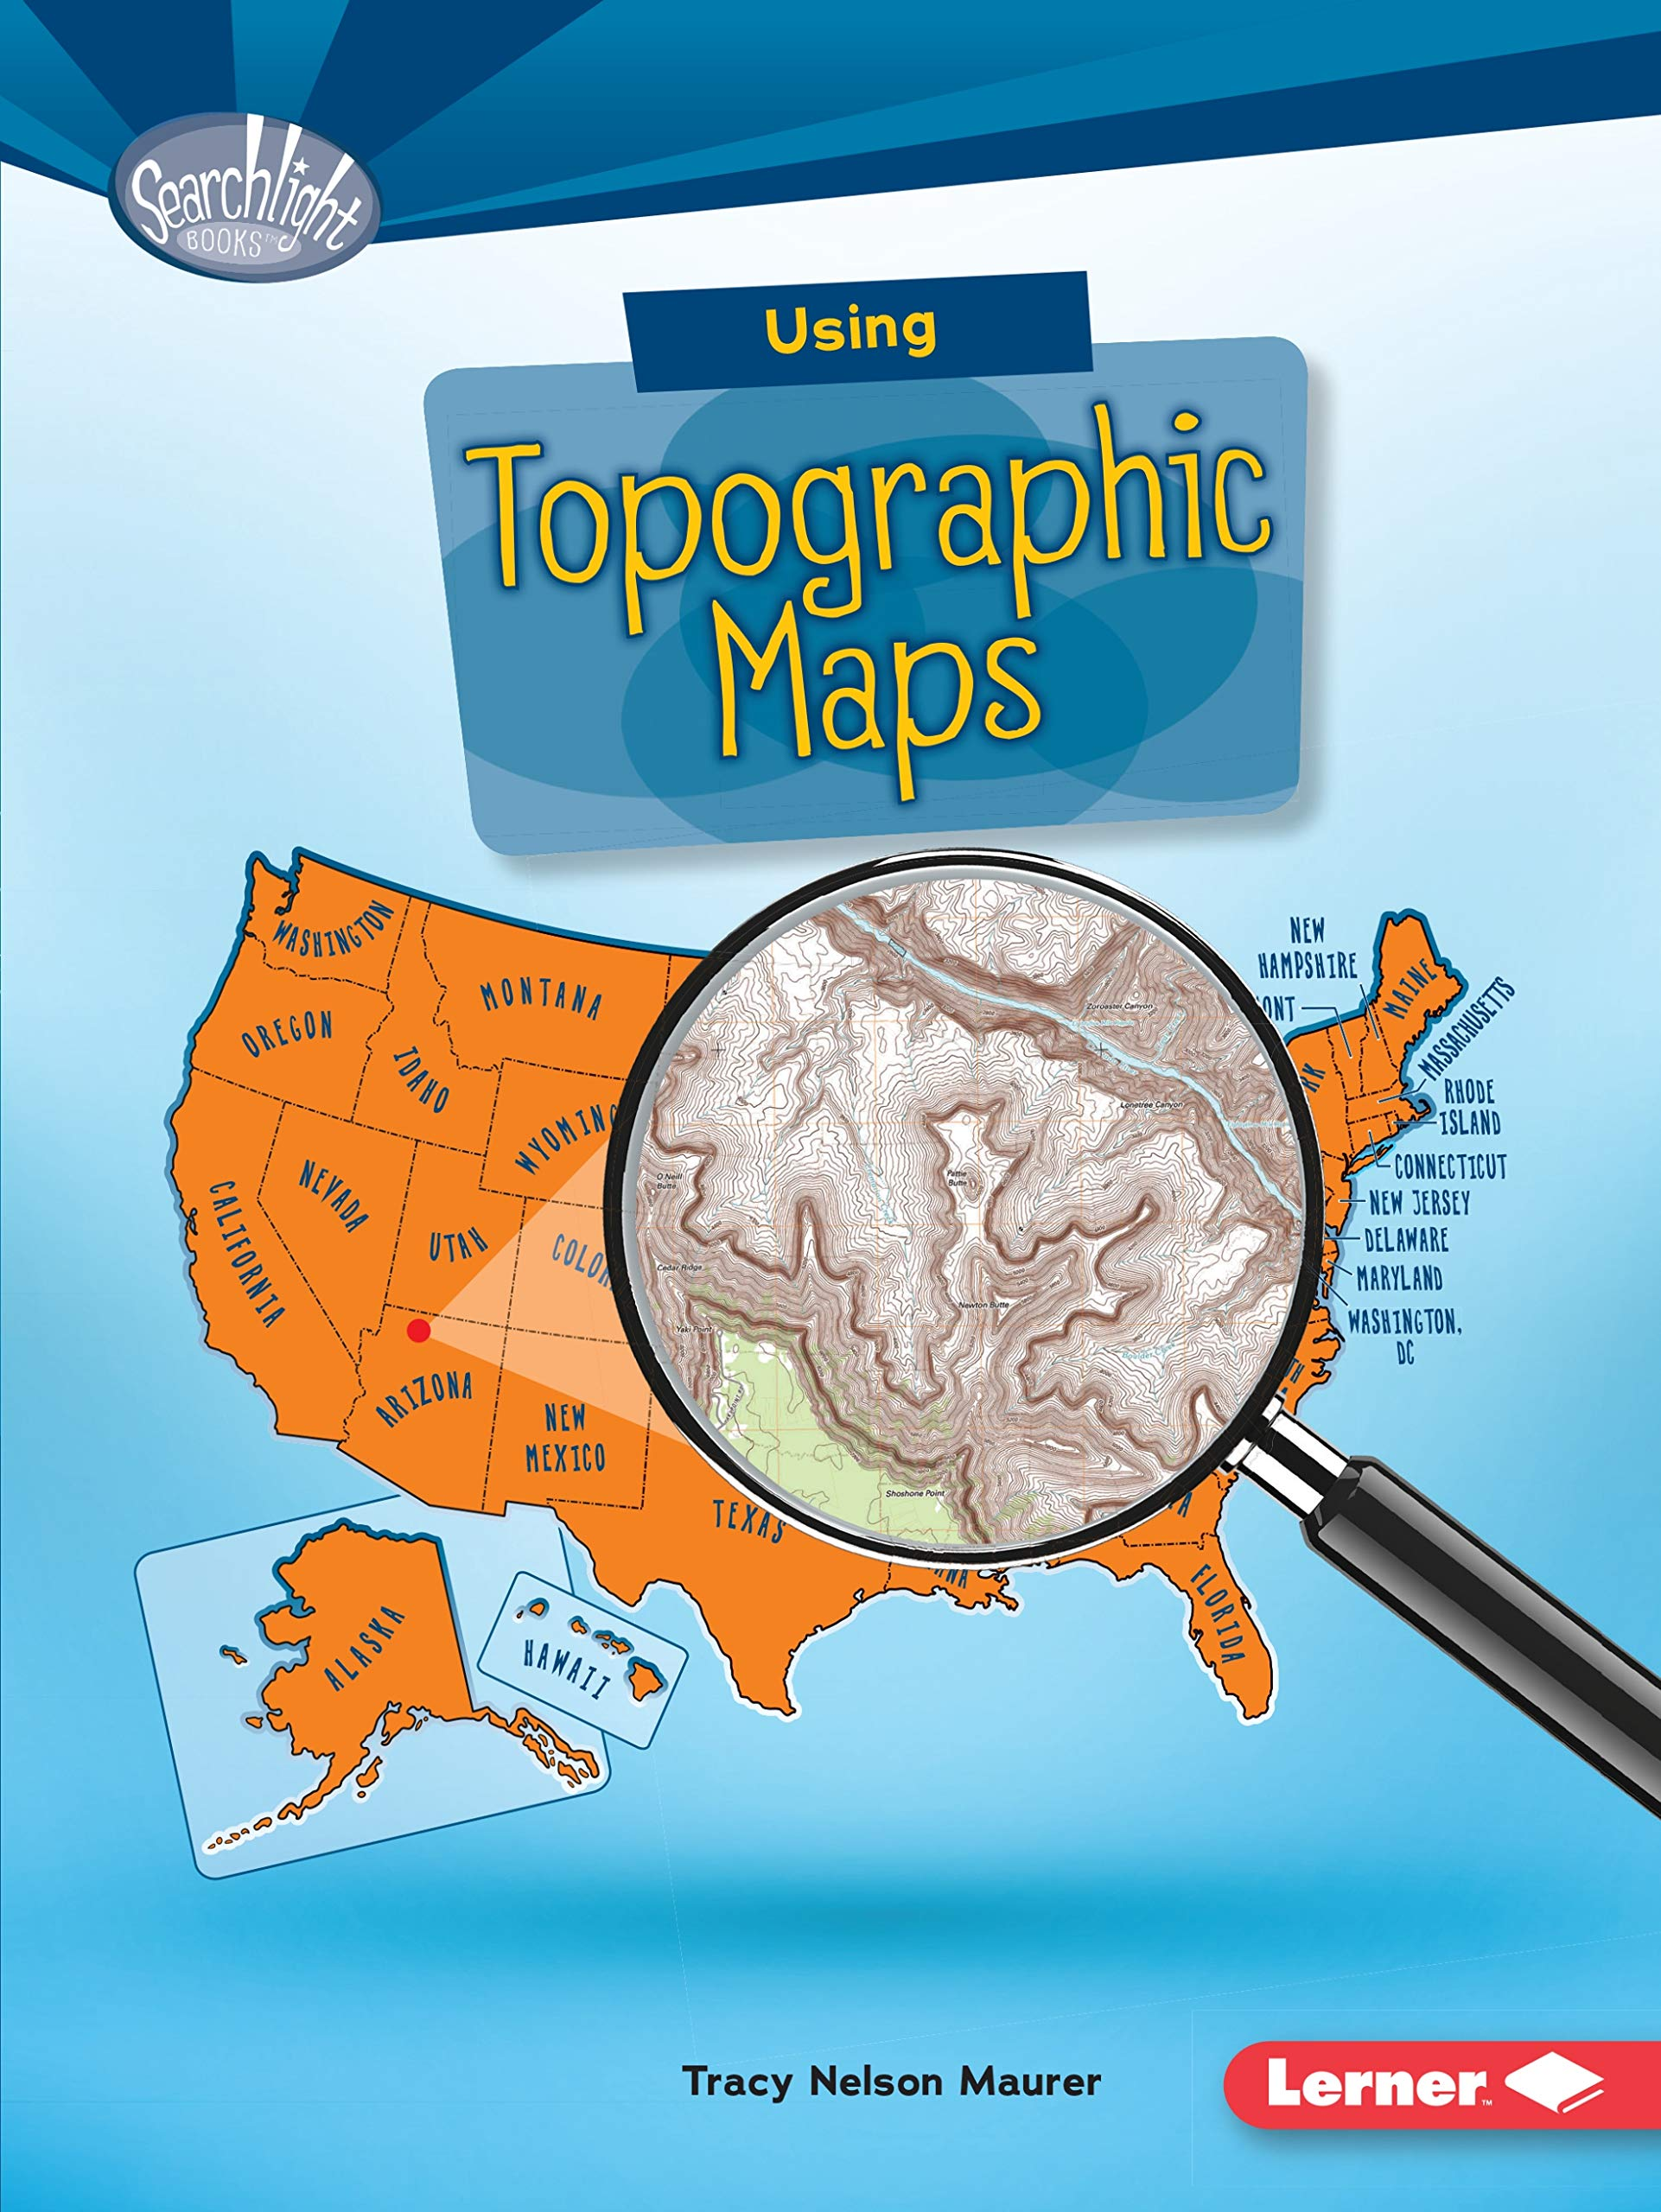 Using Topographic Maps (Searchlight Books-What Do You Know About Maps?) ebook